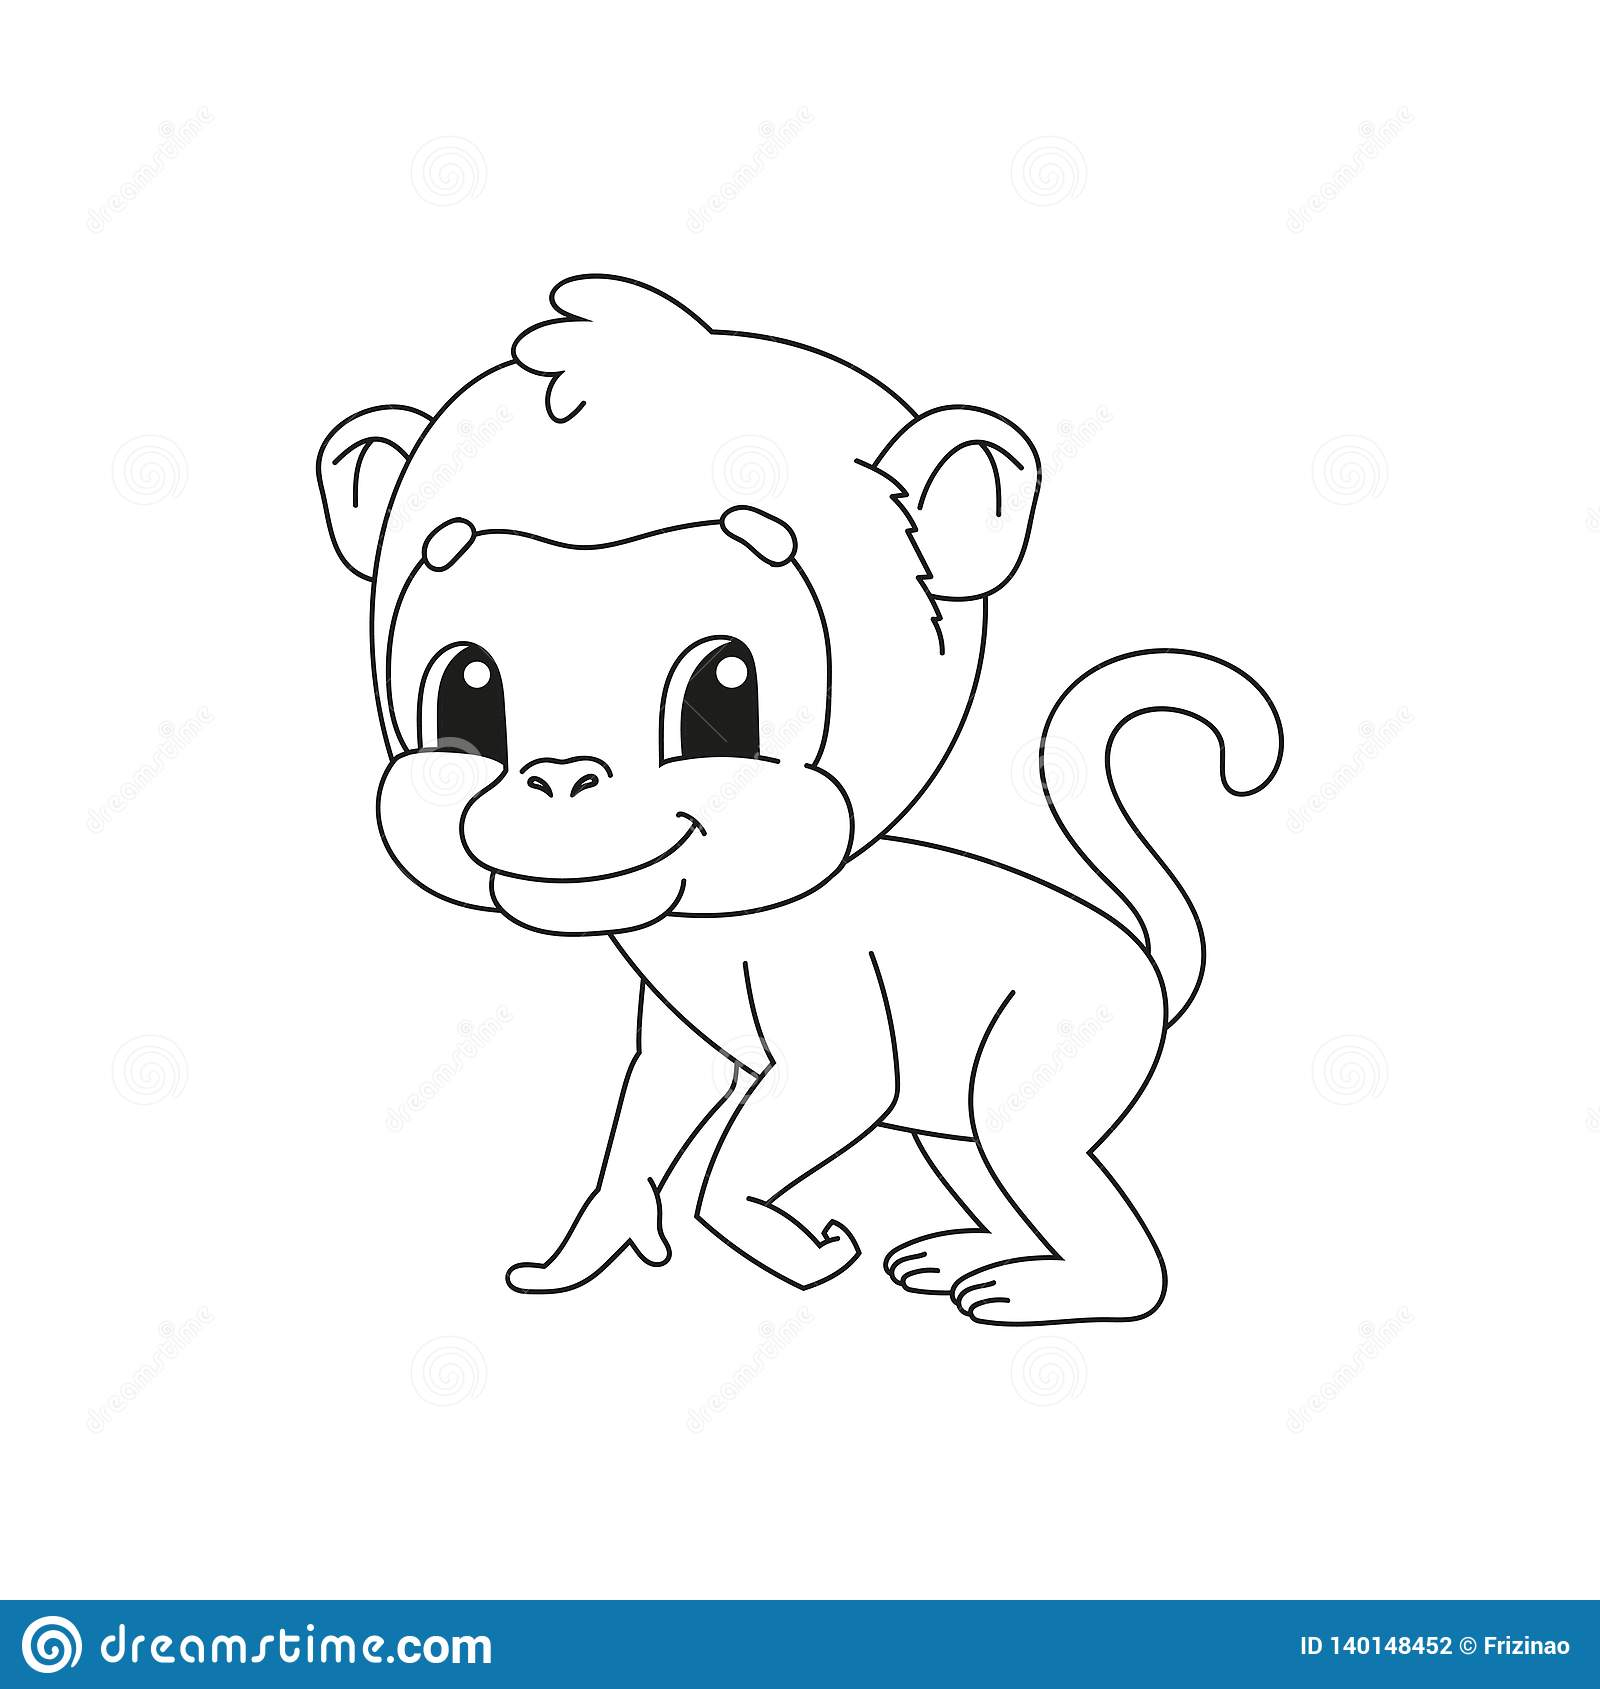 - Coloring Book Pages For Kids. Cute Cartoon Vector Illustration